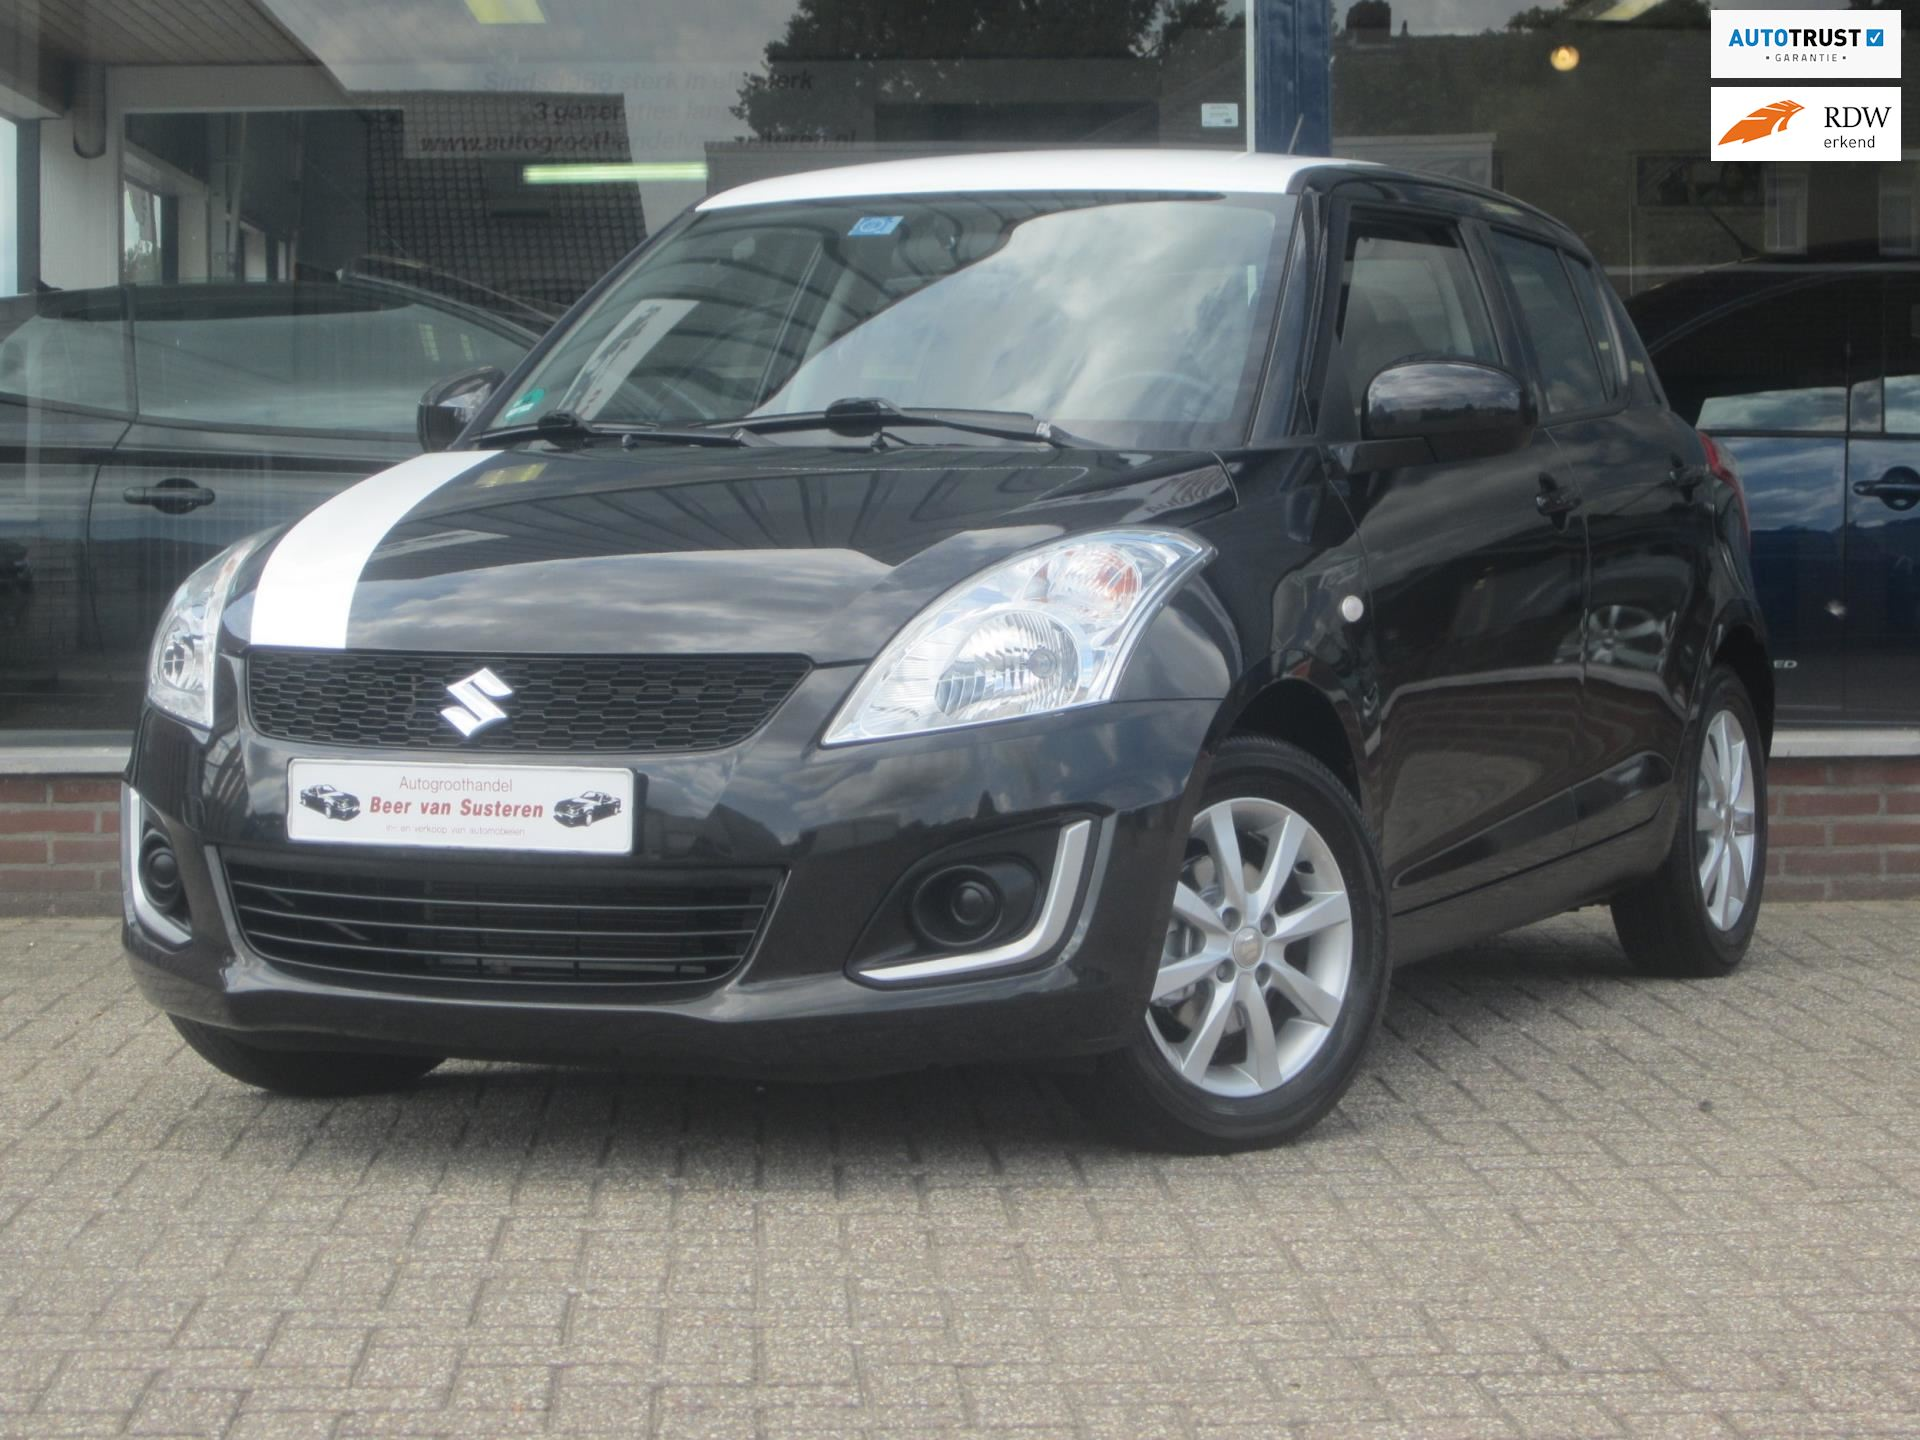 Suzuki Swift occasion - Beer van Susteren